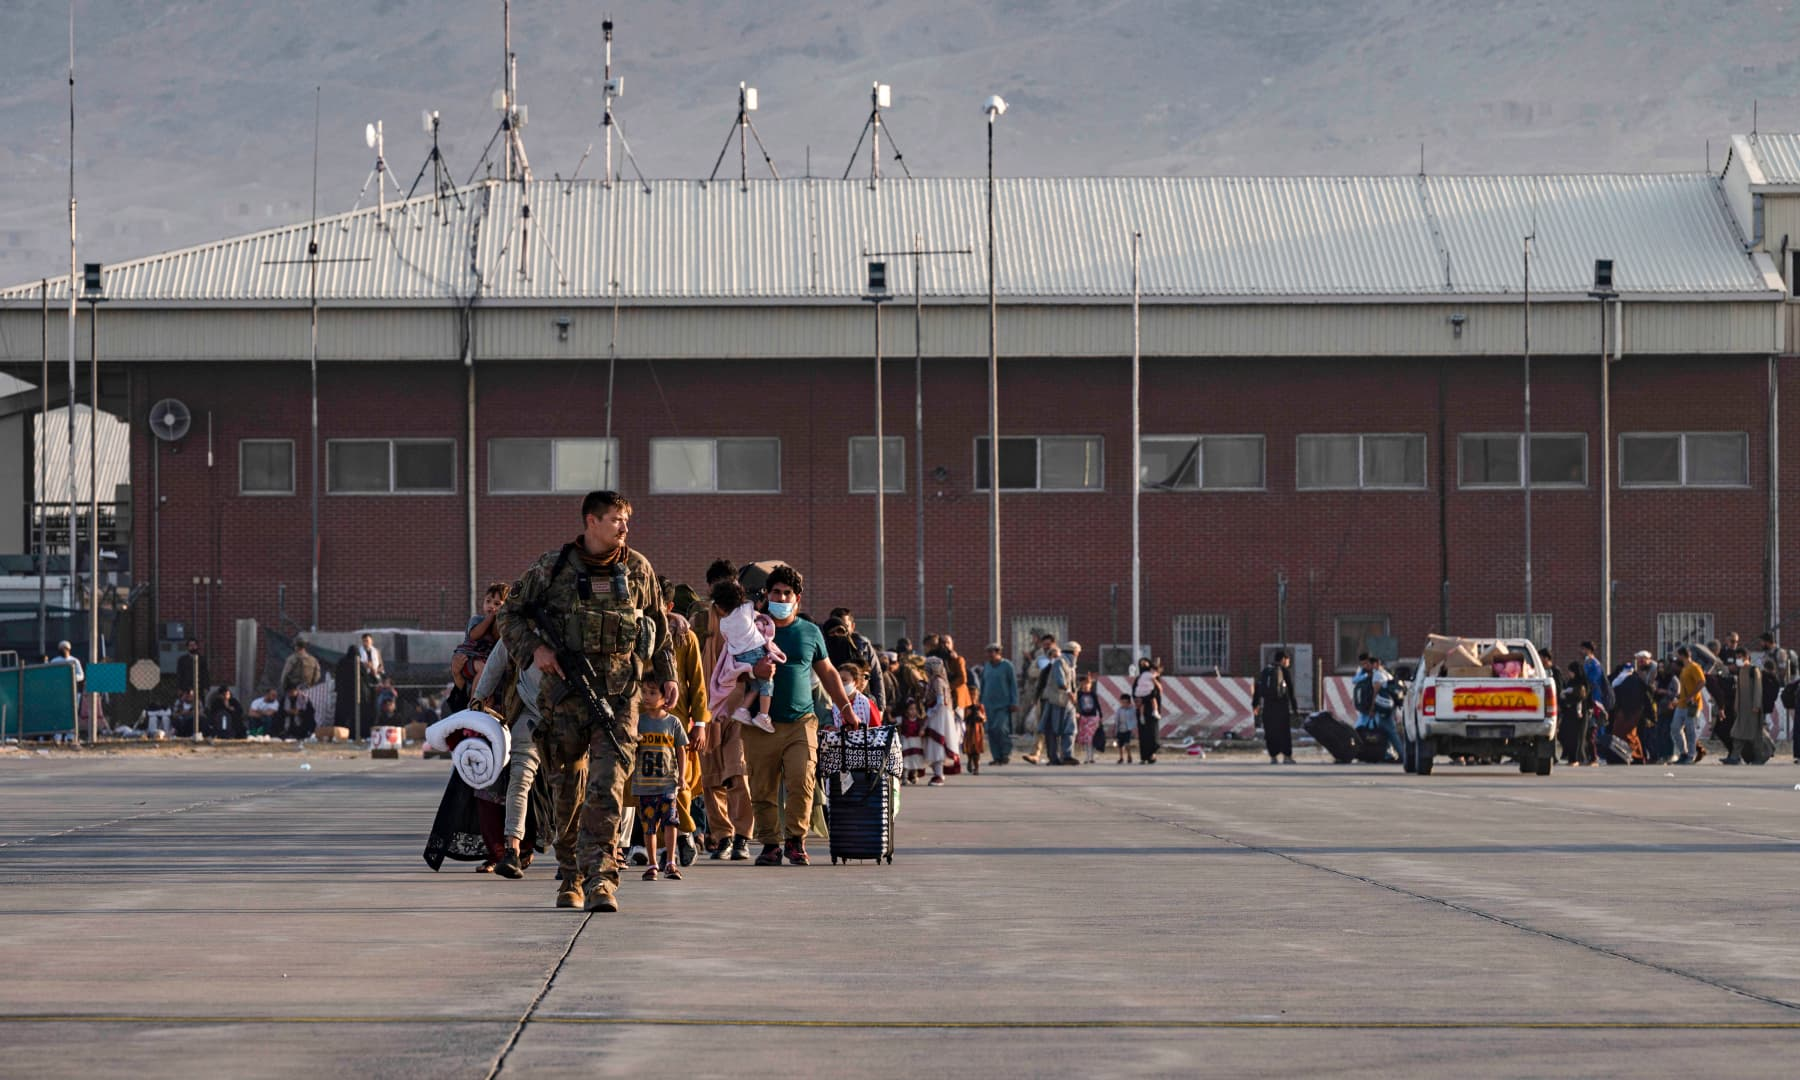 A US Air Force airman guides evacuees to board a US Air Force C-17 Globemaster III at Hamid Karzai International Airport in Kabul, Afghanistan on August 24, 2021. — AP